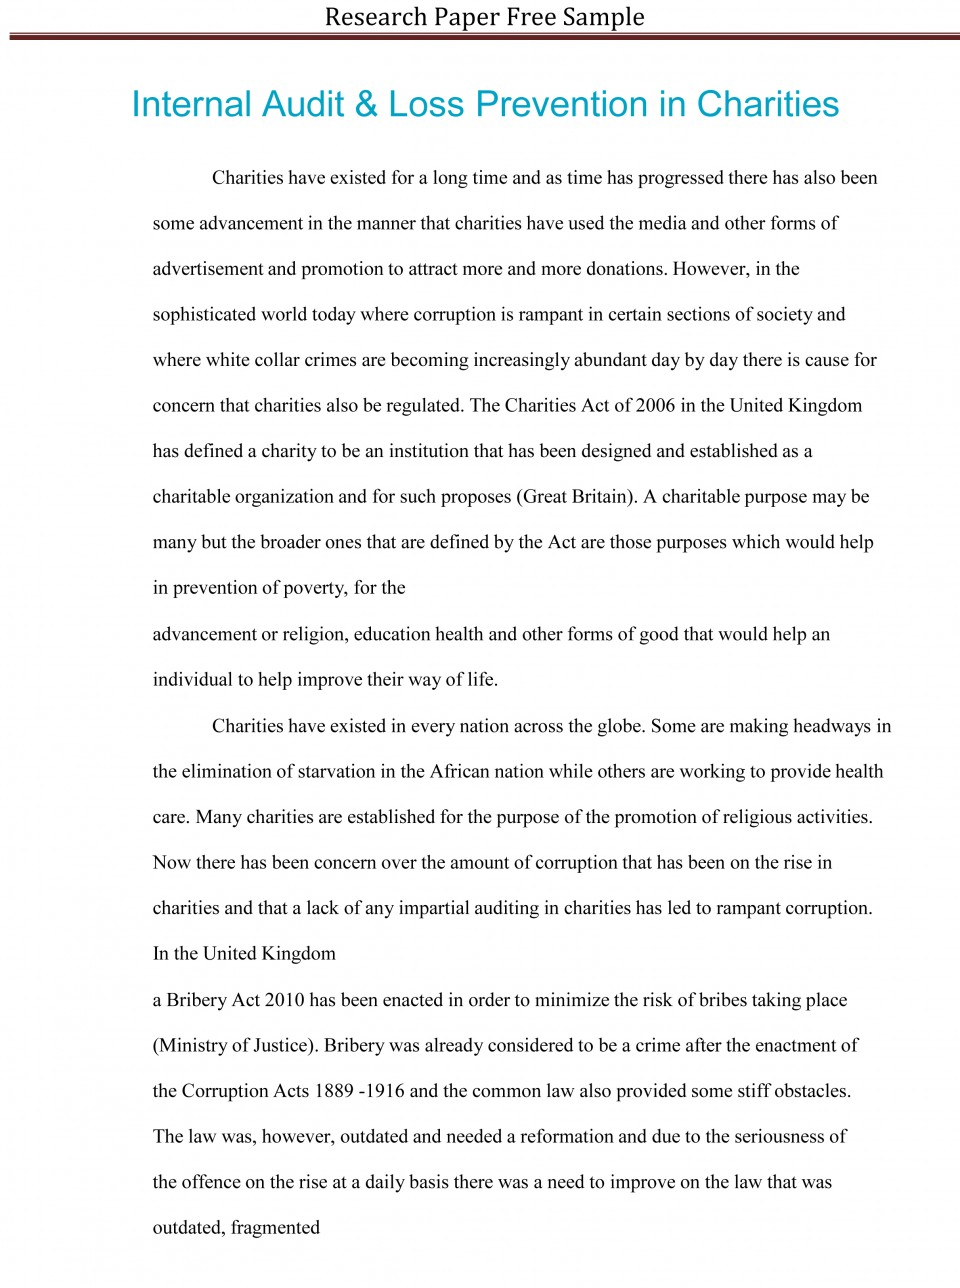 014 Example Of Introduction In Research Paper Help Writing Paragraph Unique Imrad Format About Smoking Cyberbullying 960